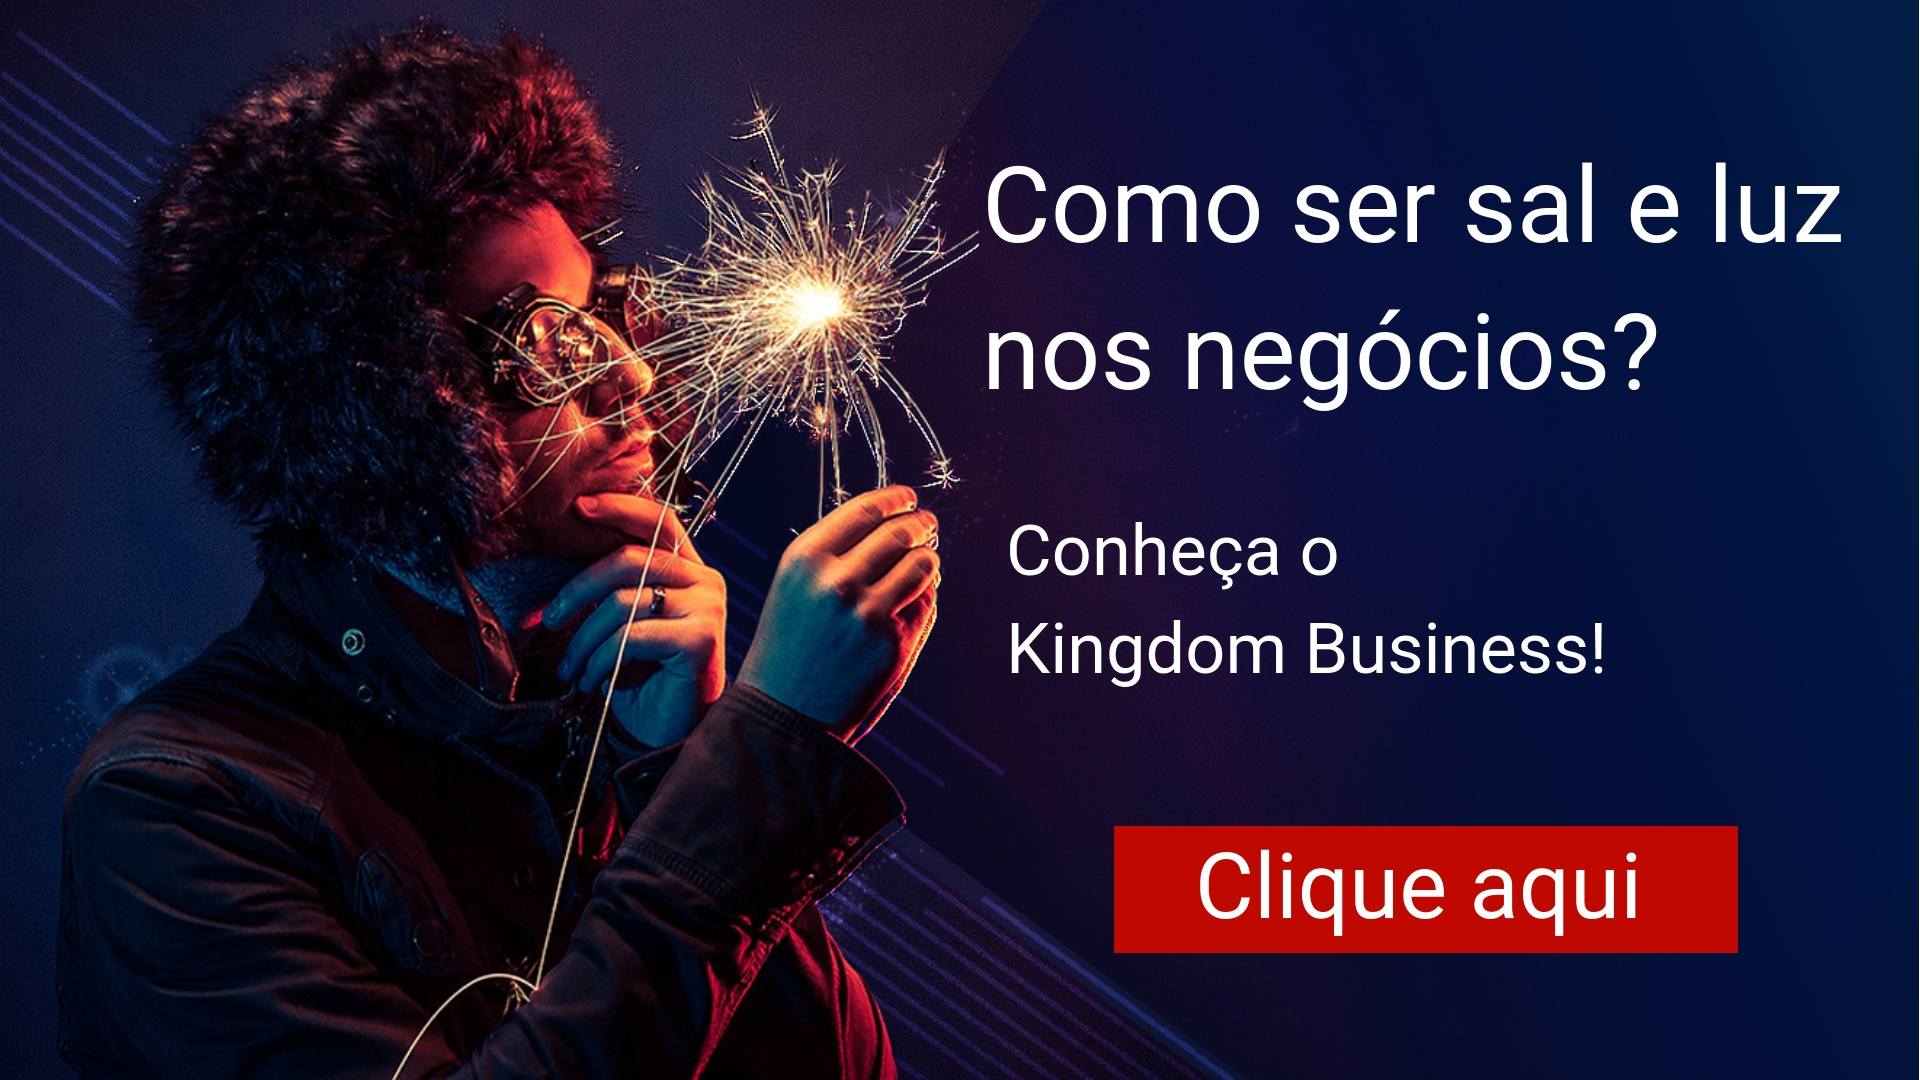 Kingdom Business